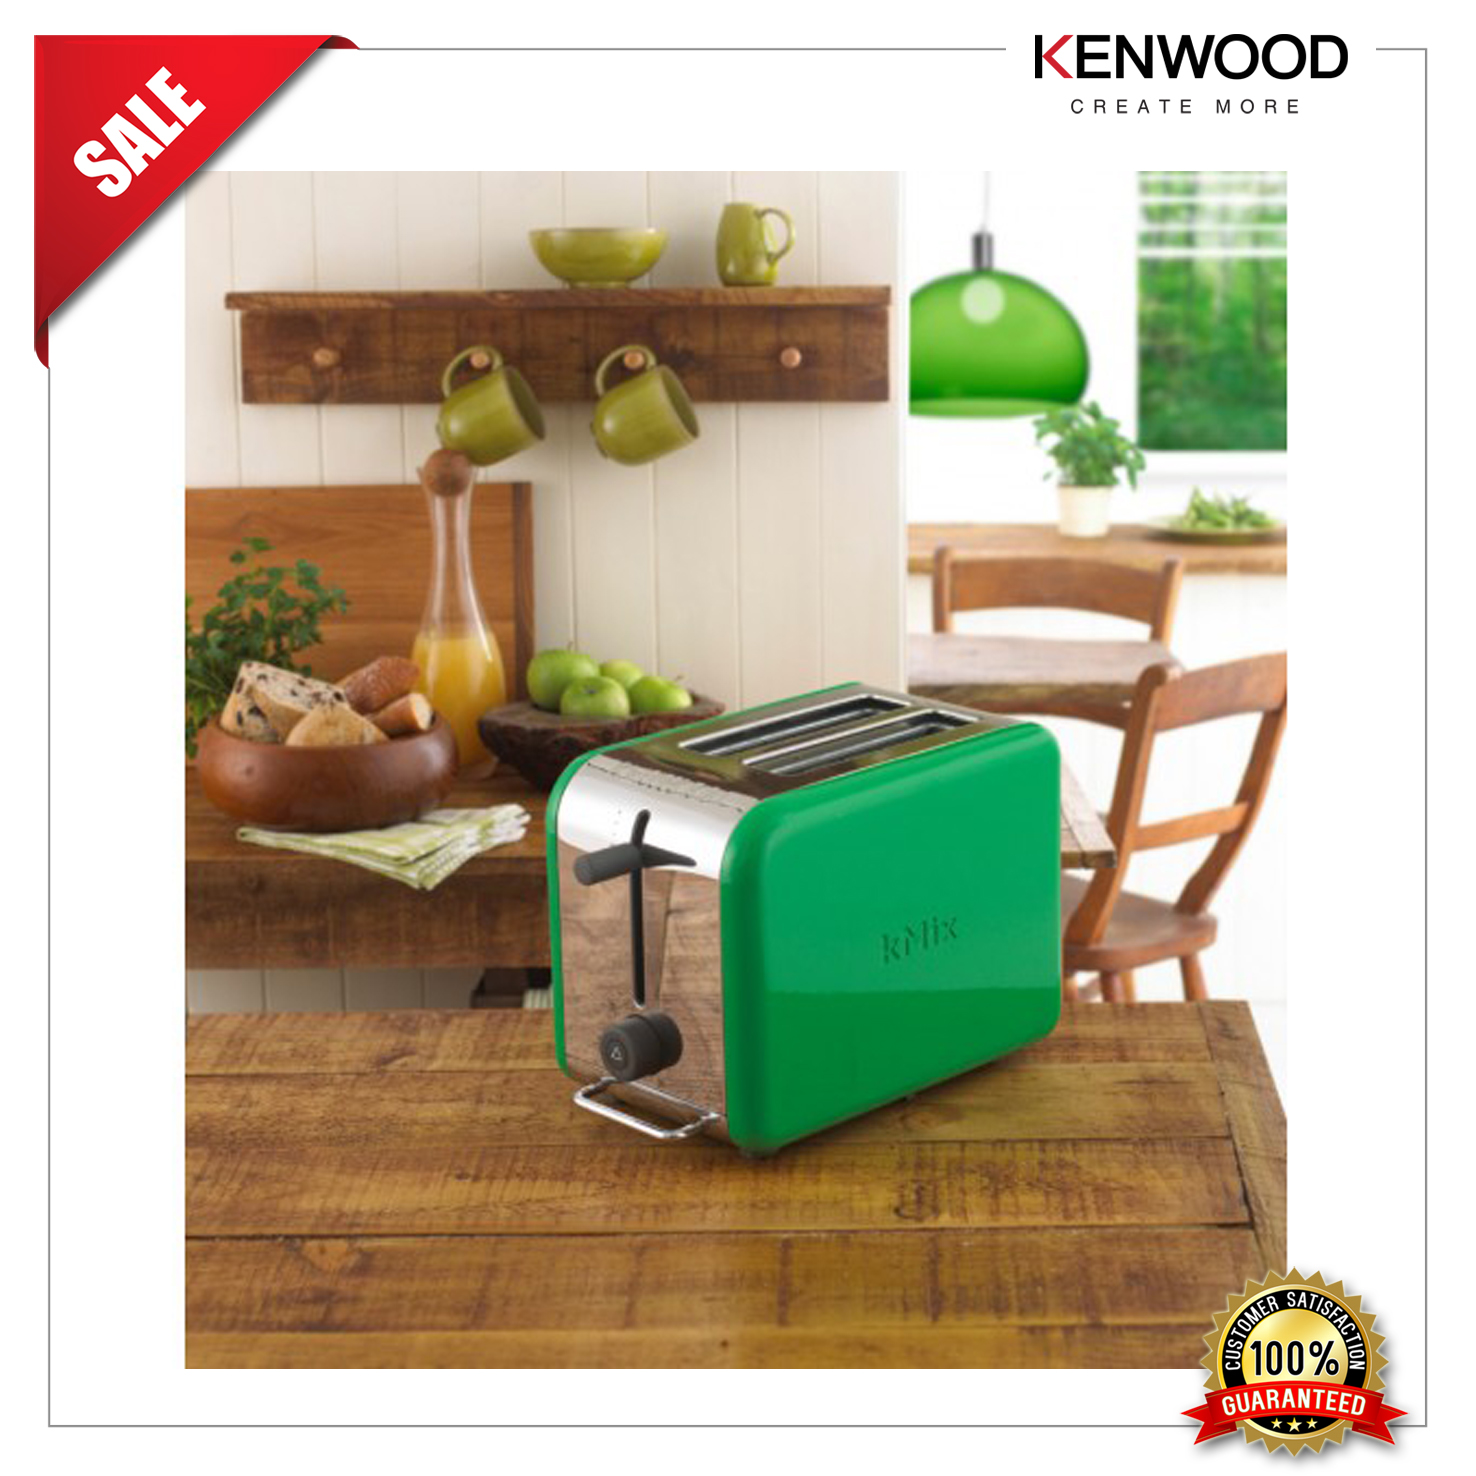 KENWOOD_TTM025_TOASTER_GREEN – REVISI 3